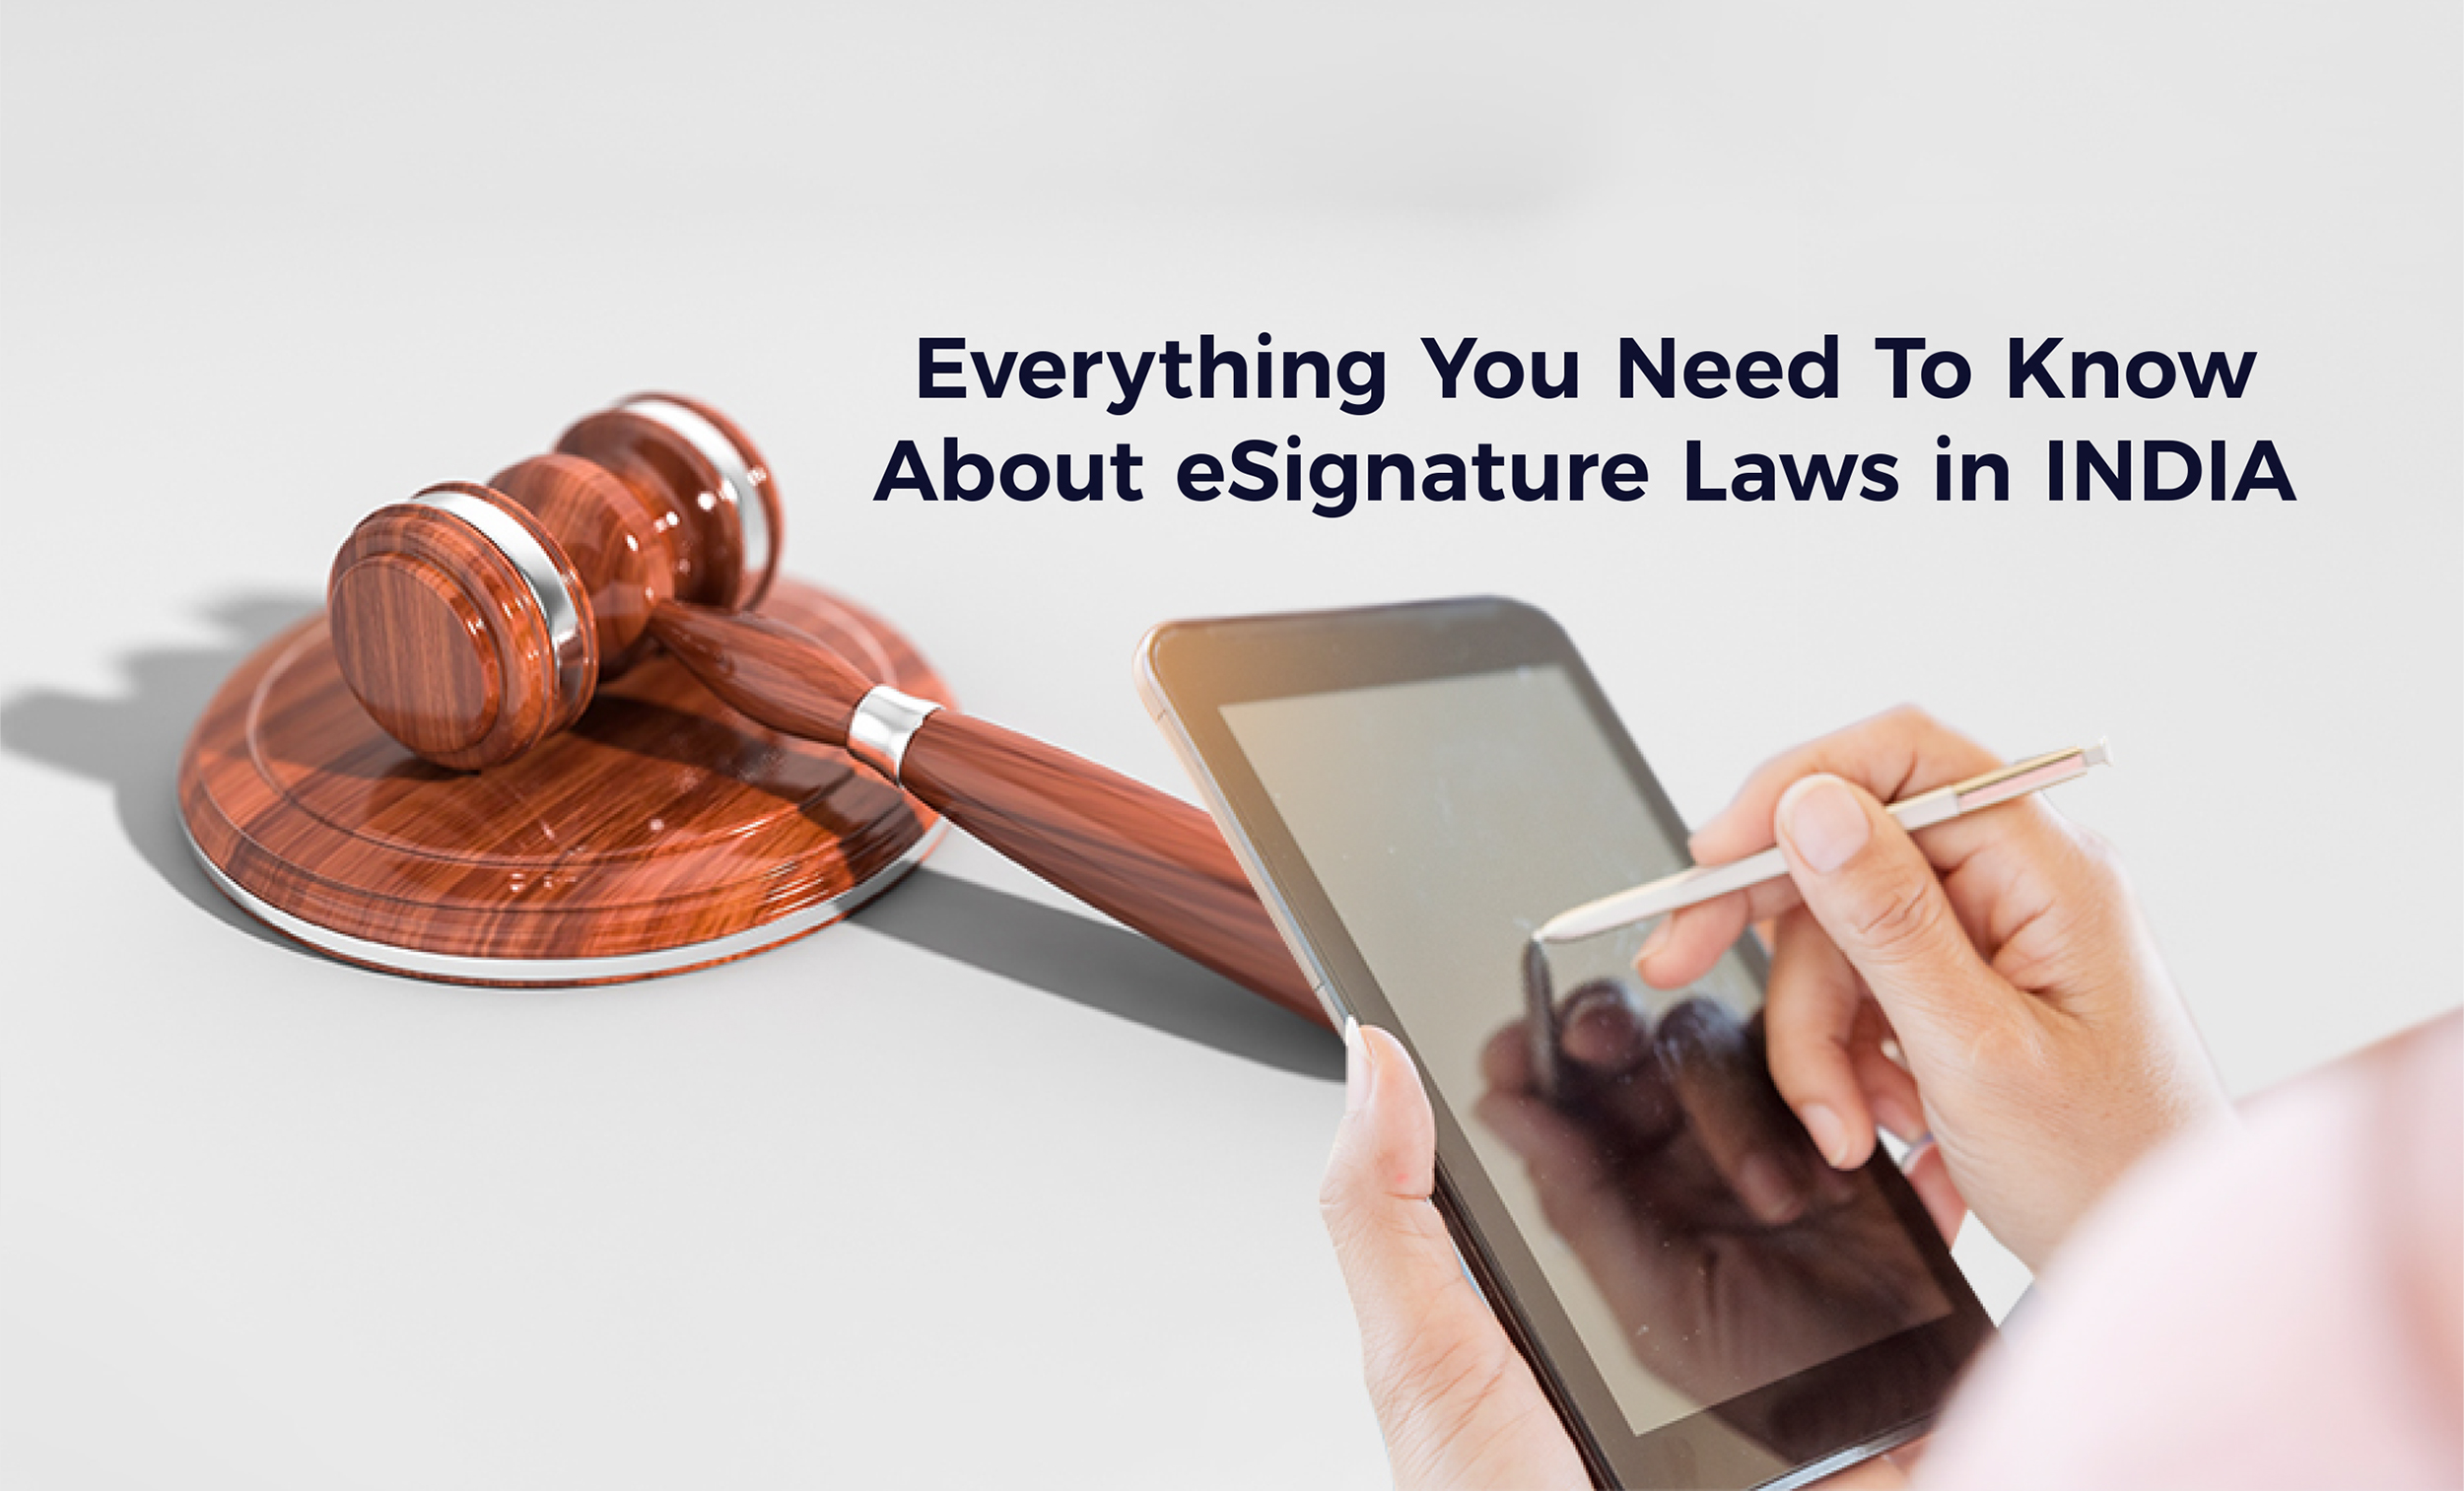 Everything You Need To Know About eSignature Laws in India